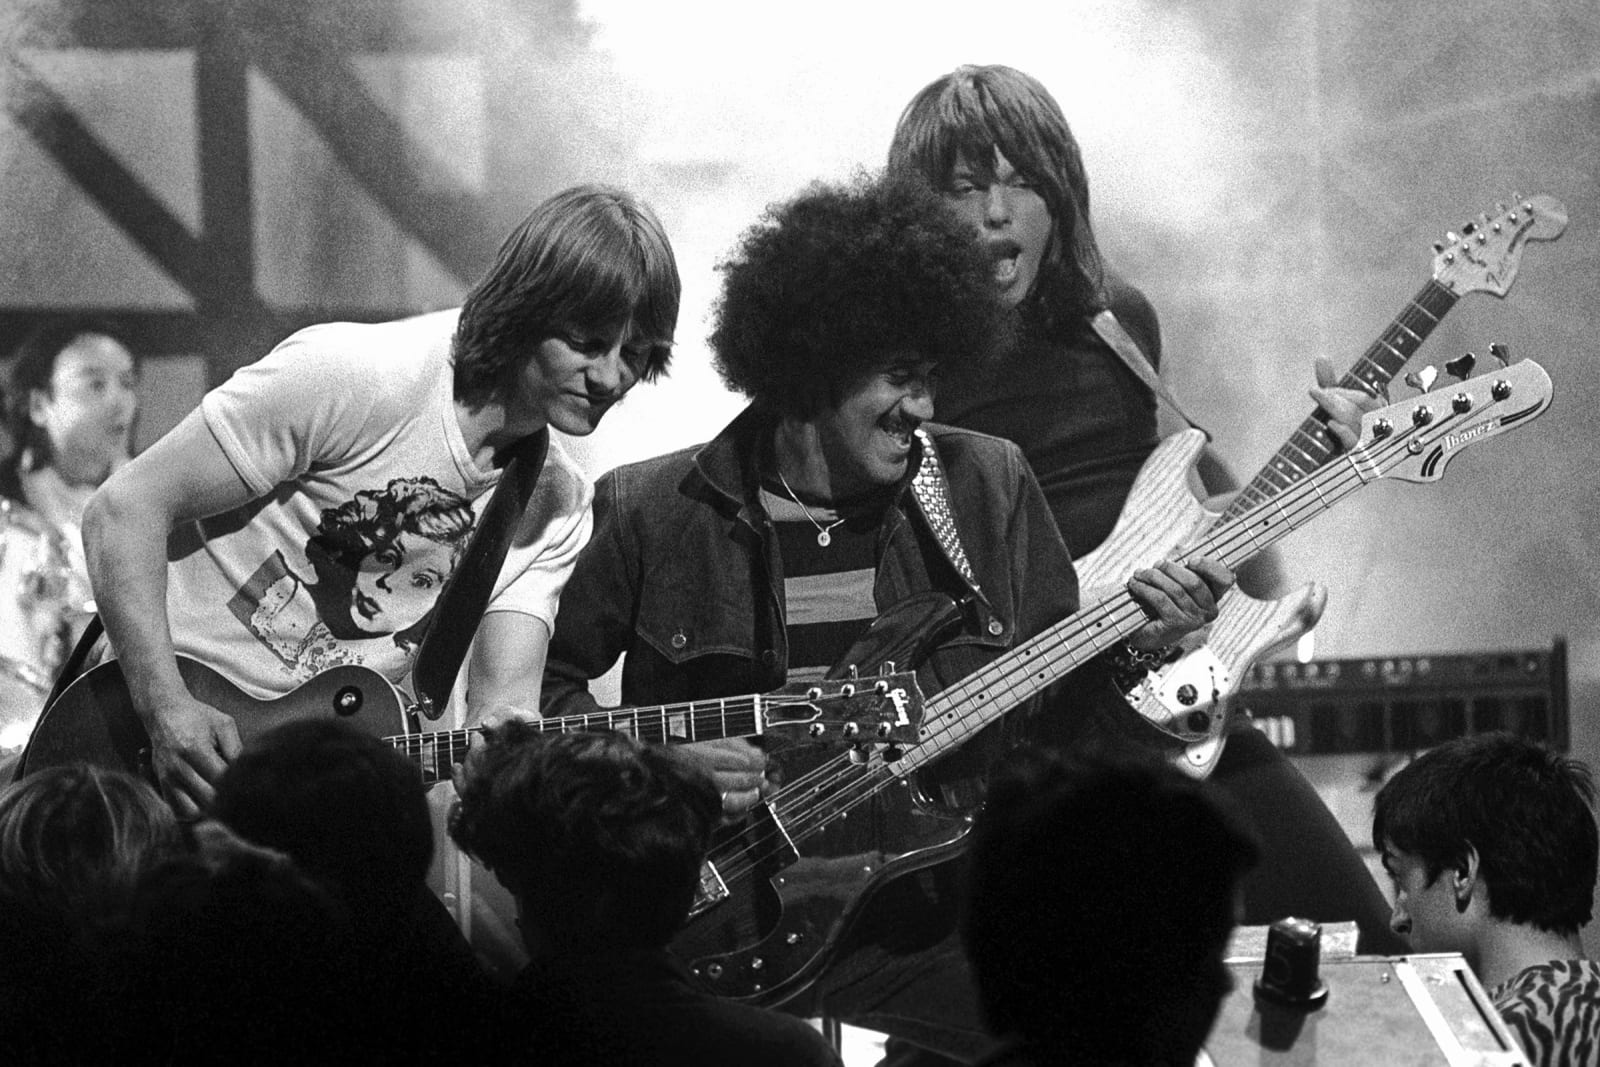 THIN LIZZY, Thin Lizzy Top Of The Pops, 1981